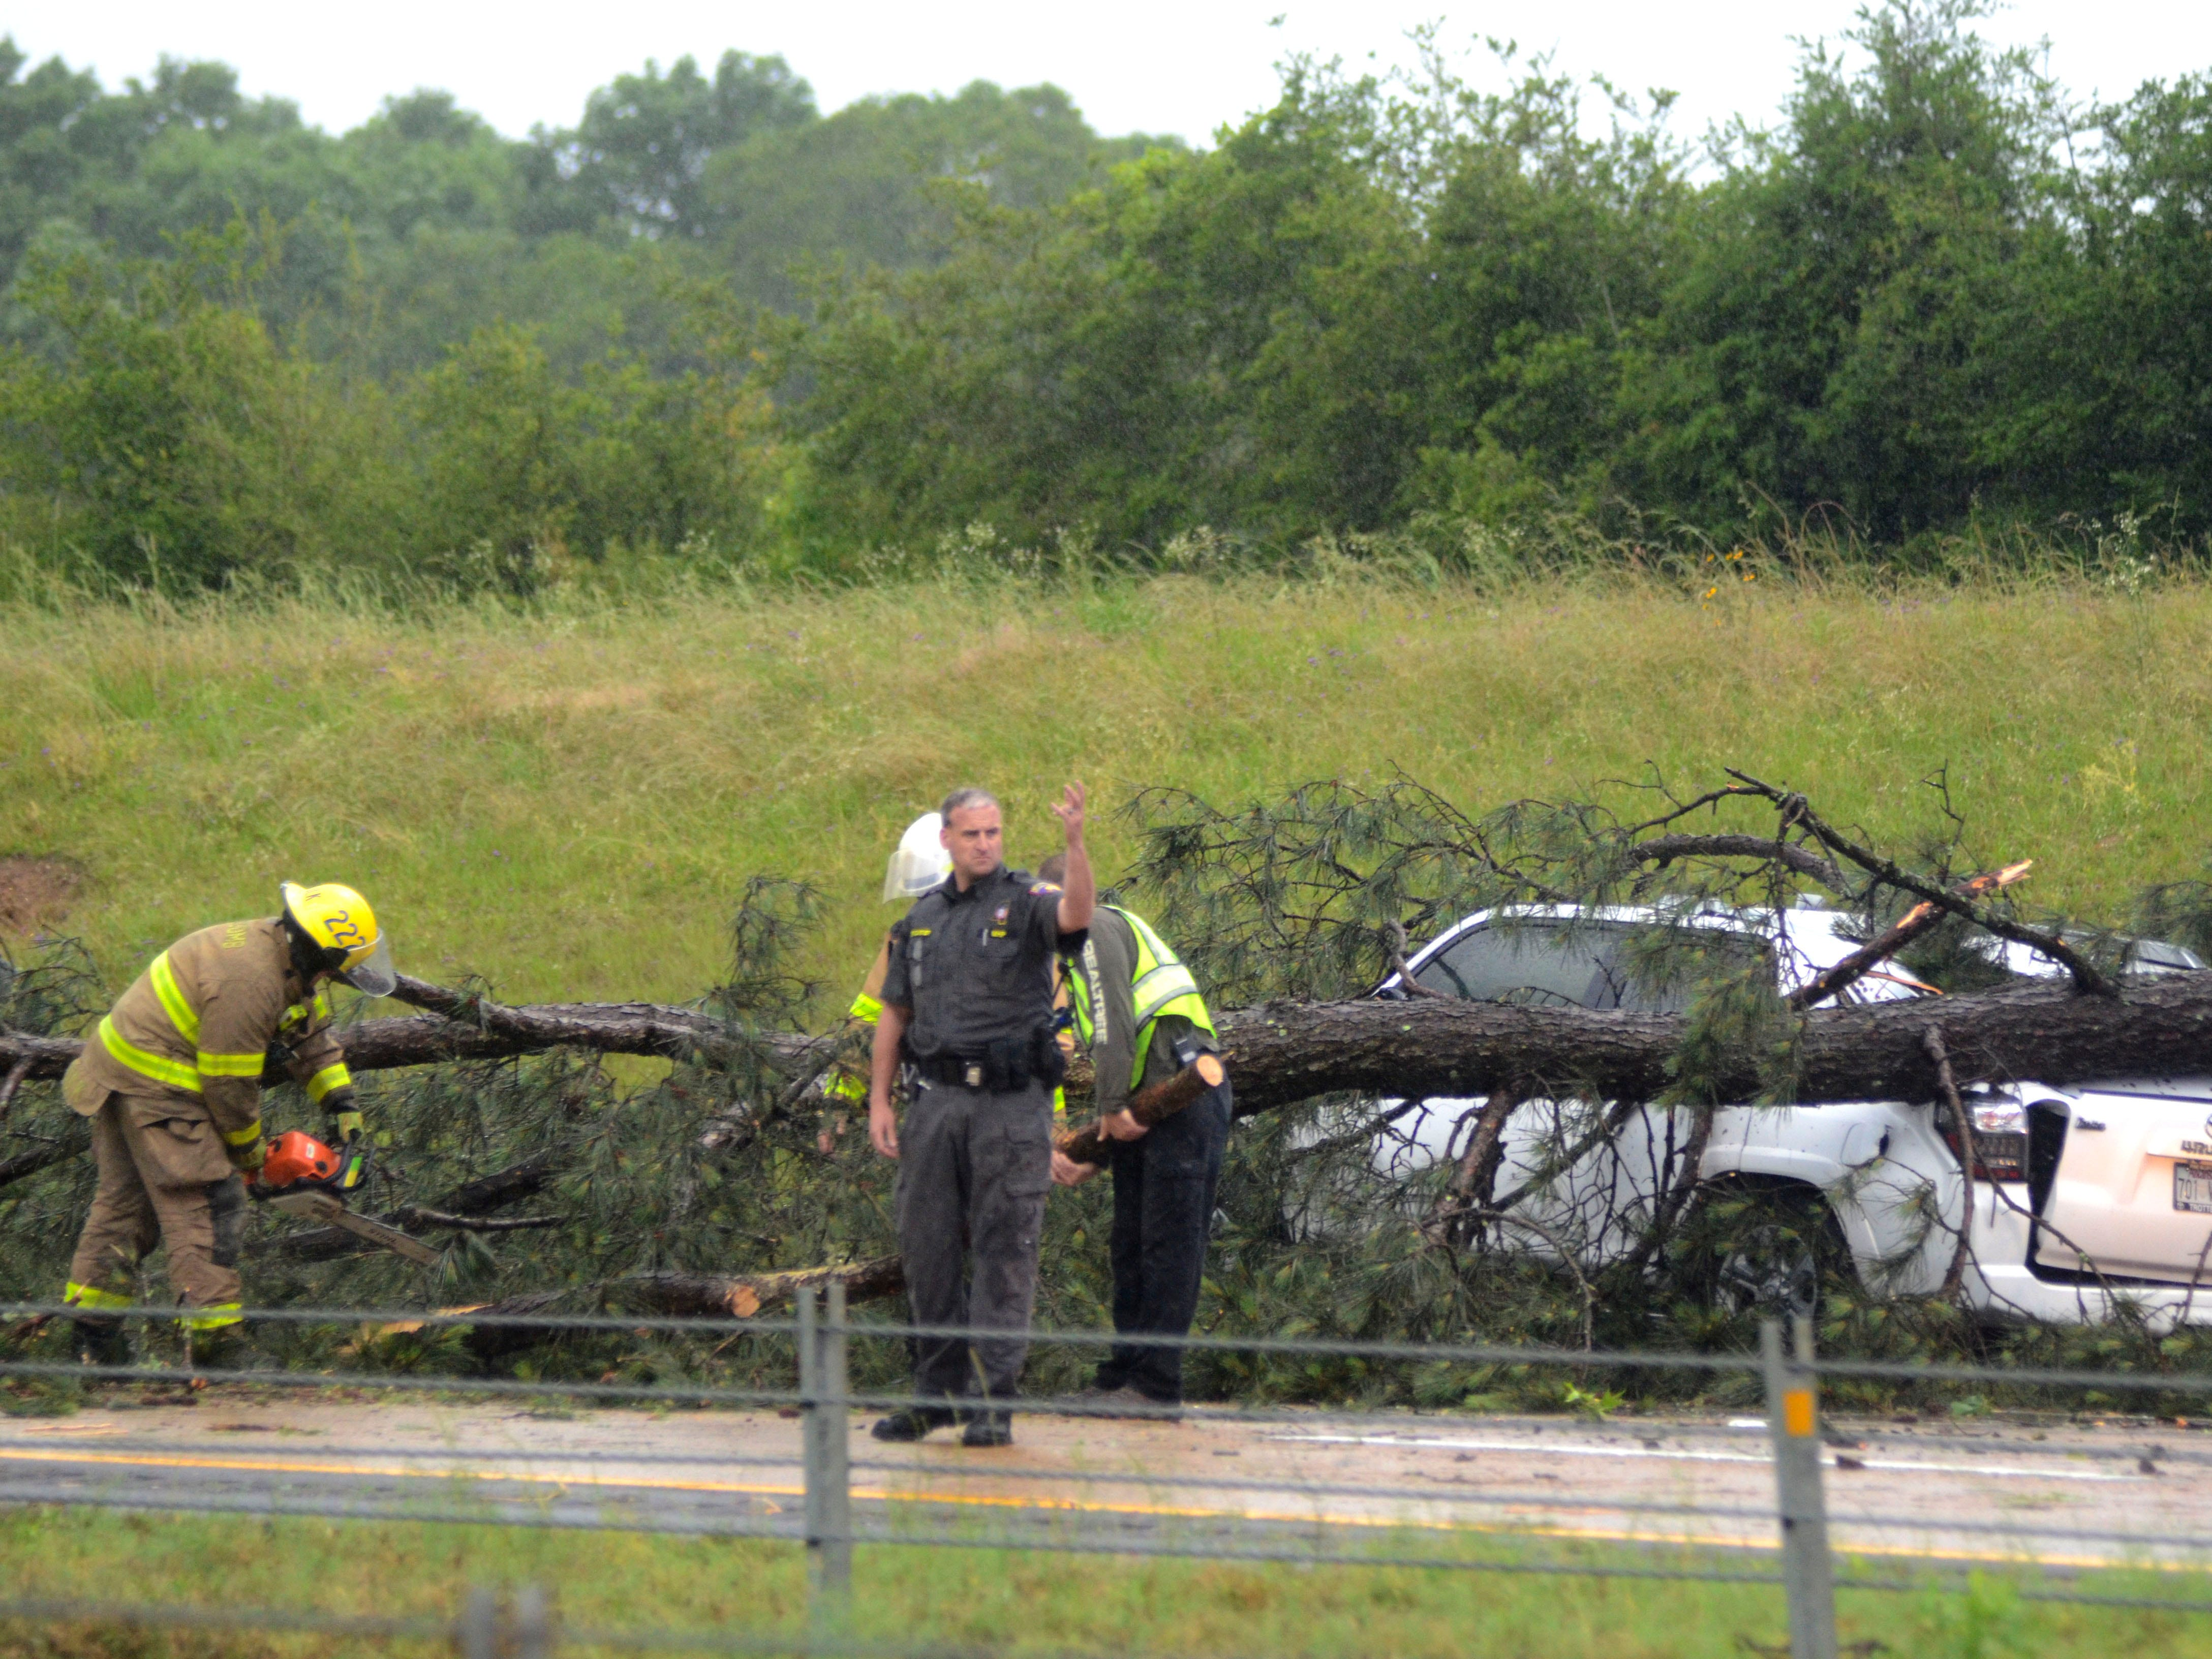 A state trooper directs traffic as emergency crews work to remove a storm-felled tree from an SUV in the southbound lanes of Interstate 55 in Mccomb, Miss., after a powerful storm swept through just before noon on Thursday, May 9, 2019.